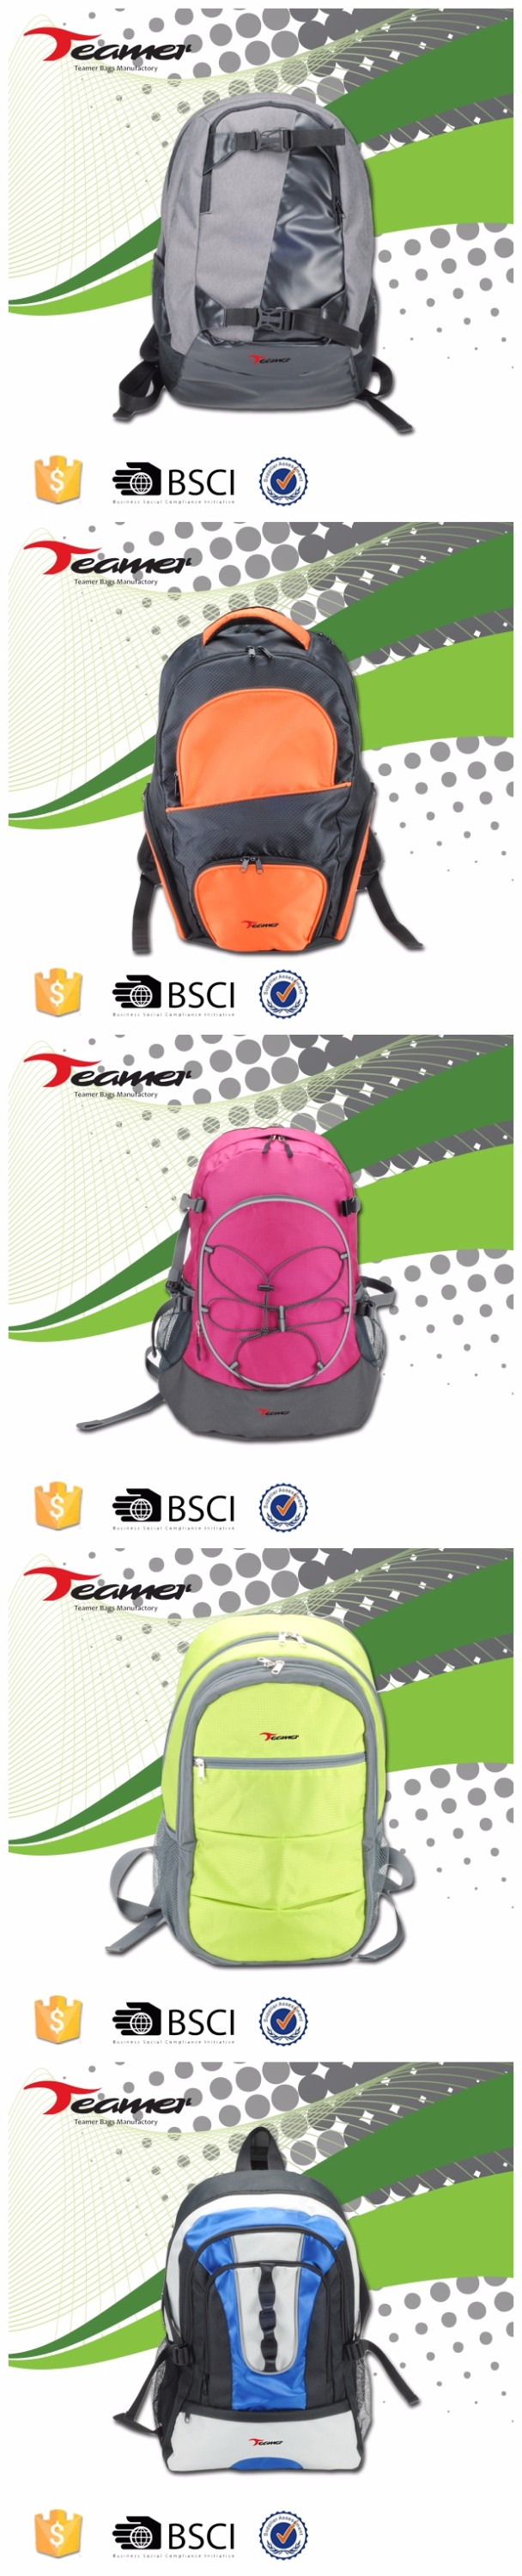 new arrivals 2017 hot new products fashion Custom backpack manufacturers china